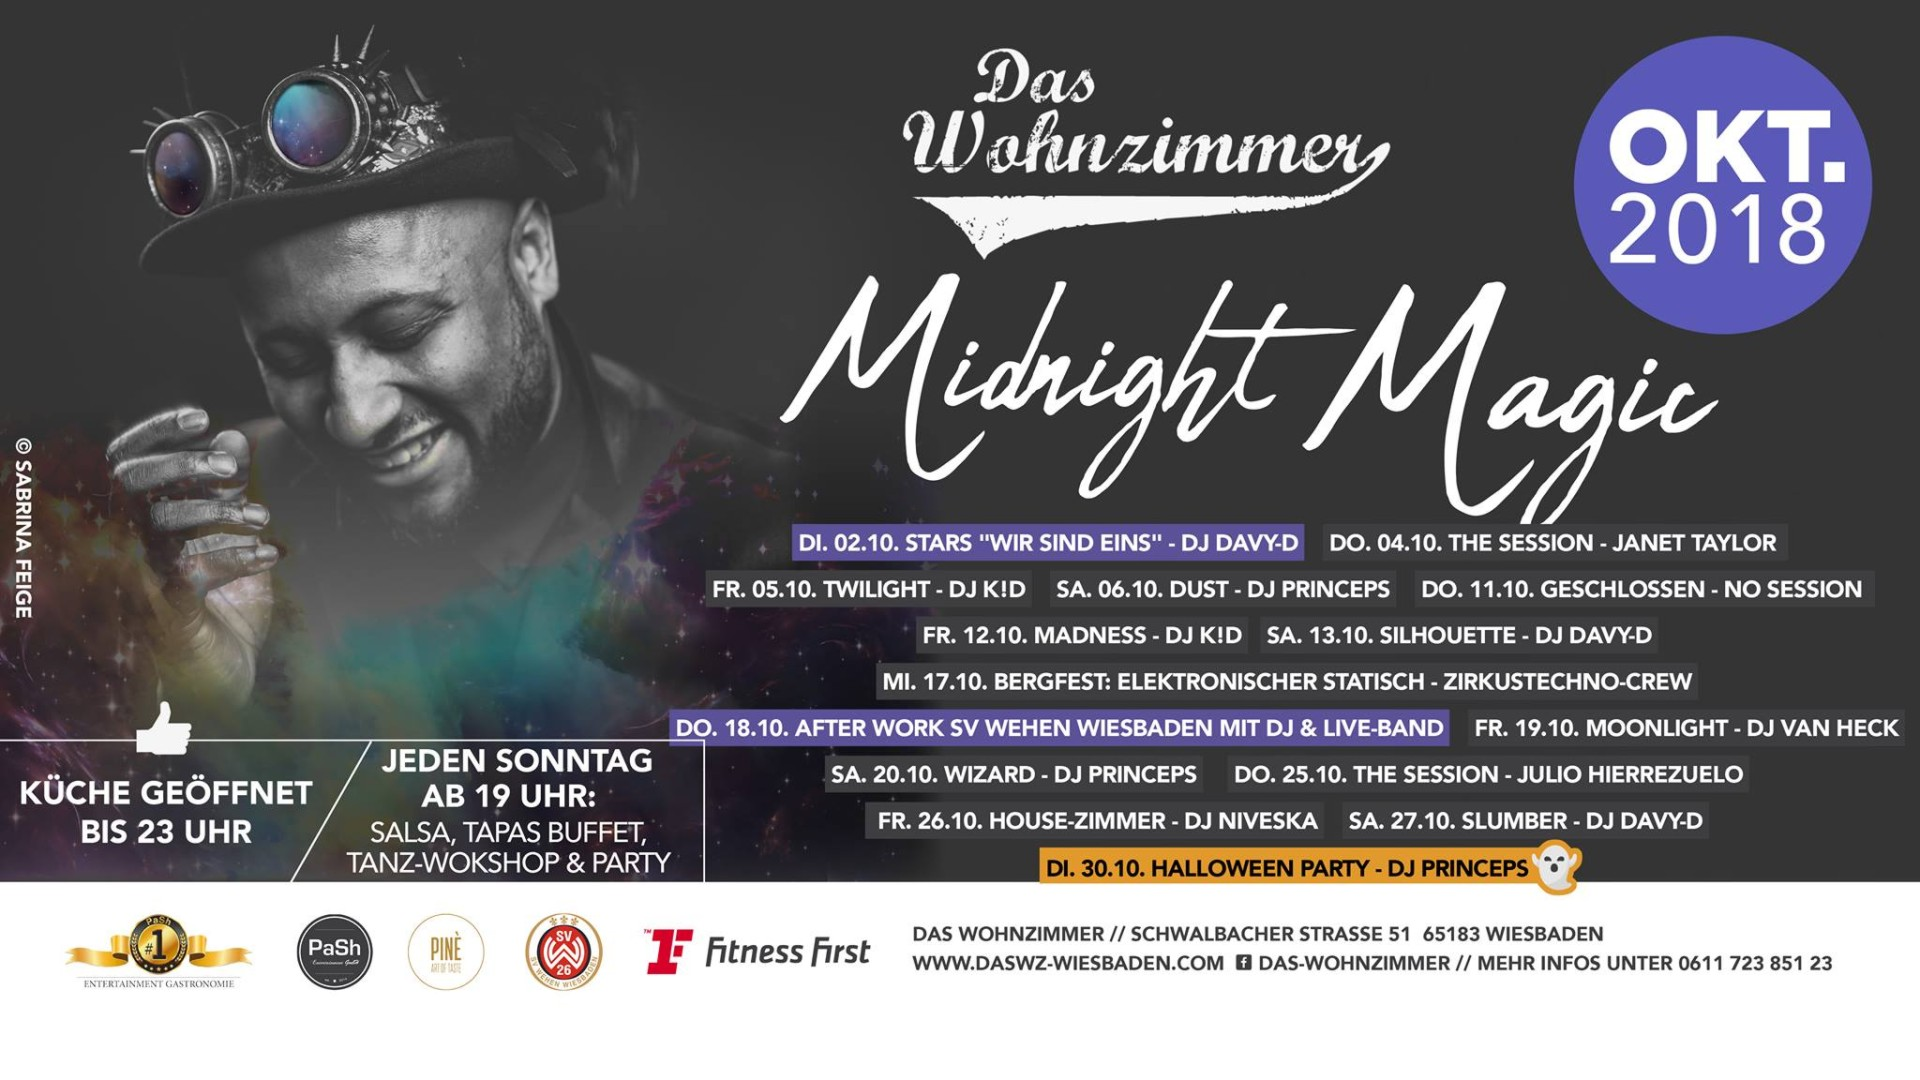 After Work Wohnzimmer Wiesbaden 19 10 2018 Midnight Magic Moonlight With Dj Van Heck Das